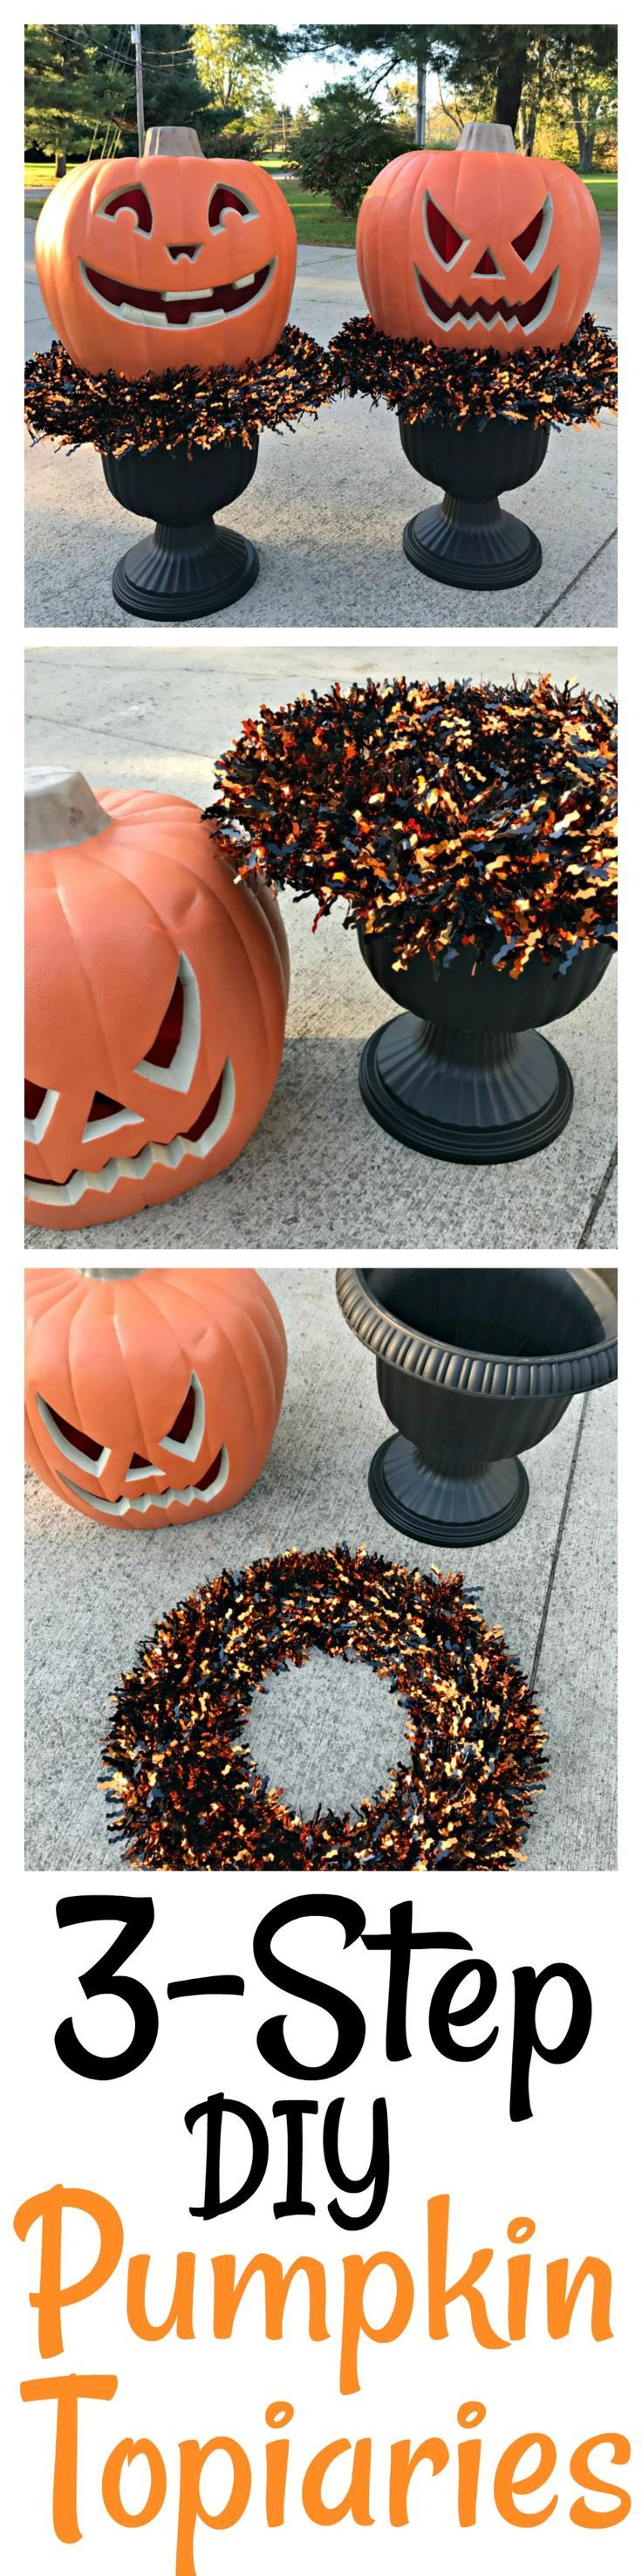 3 Step DIY Pumpkin Topiaries from The Card We Drew #LowesFallDecor